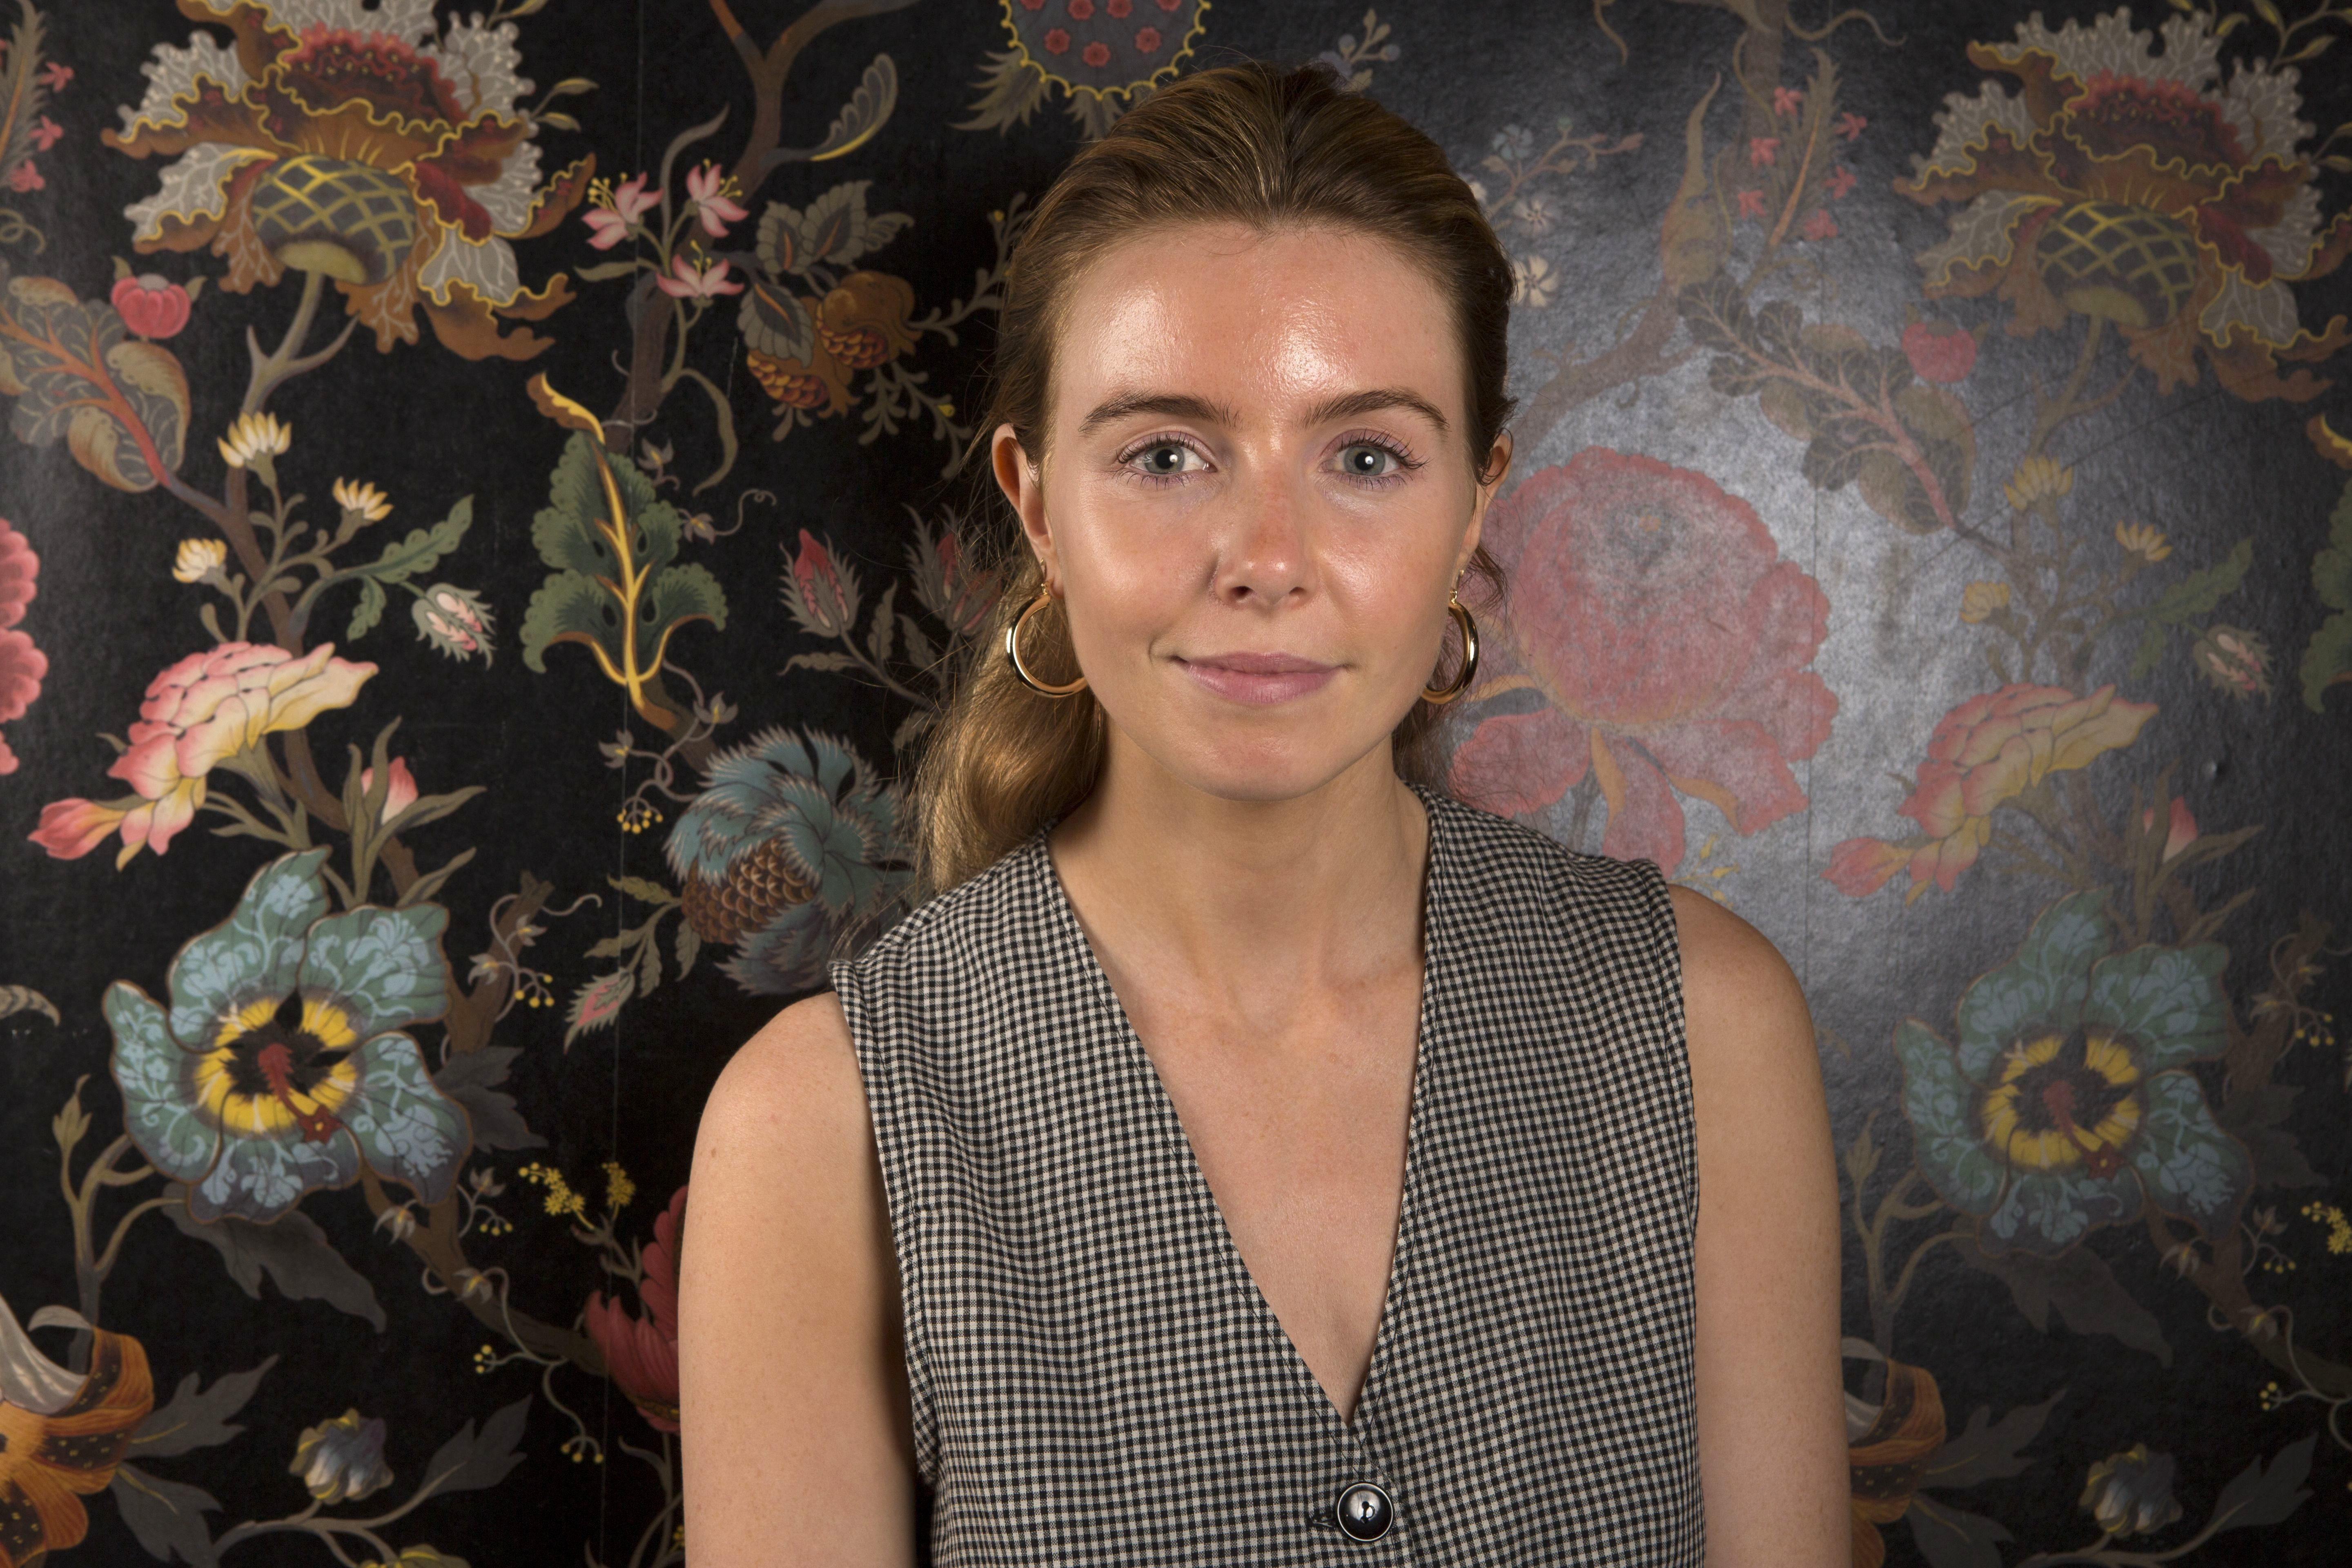 Stacey Dooley: 'Strictly Come Dancing' Star Stacey Dooley Blasts Claims